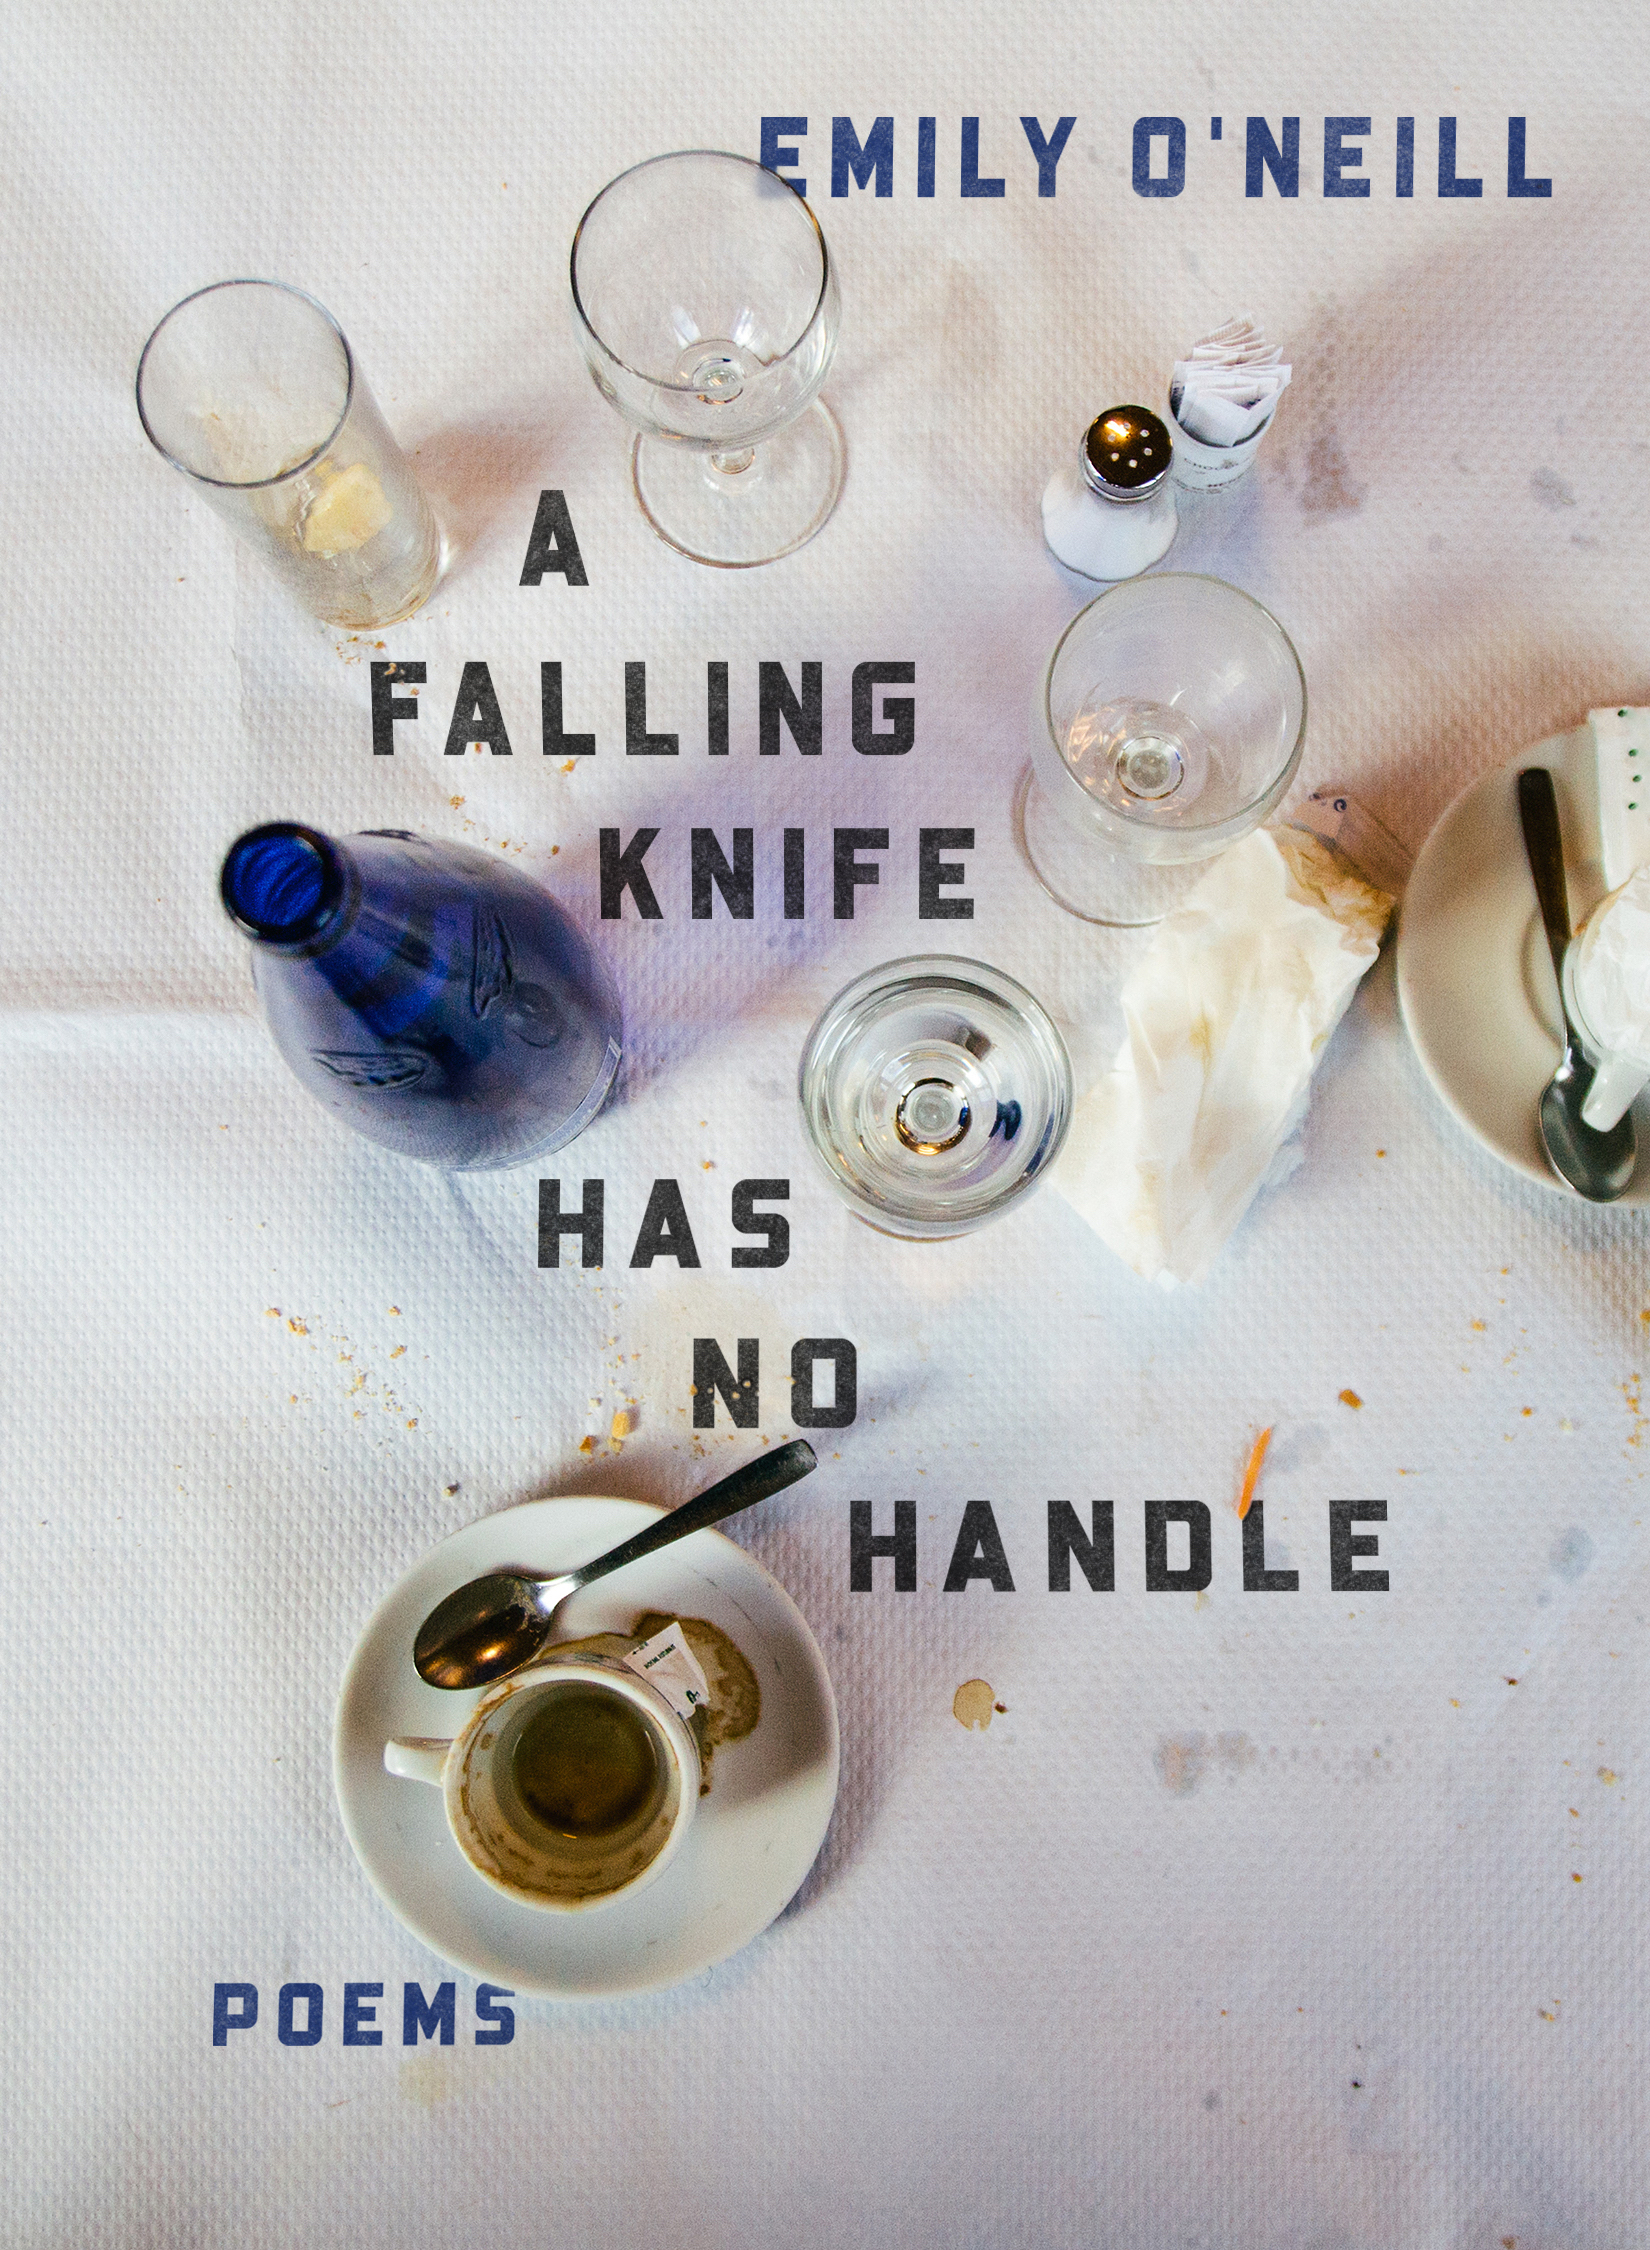 a falling knife has no handle